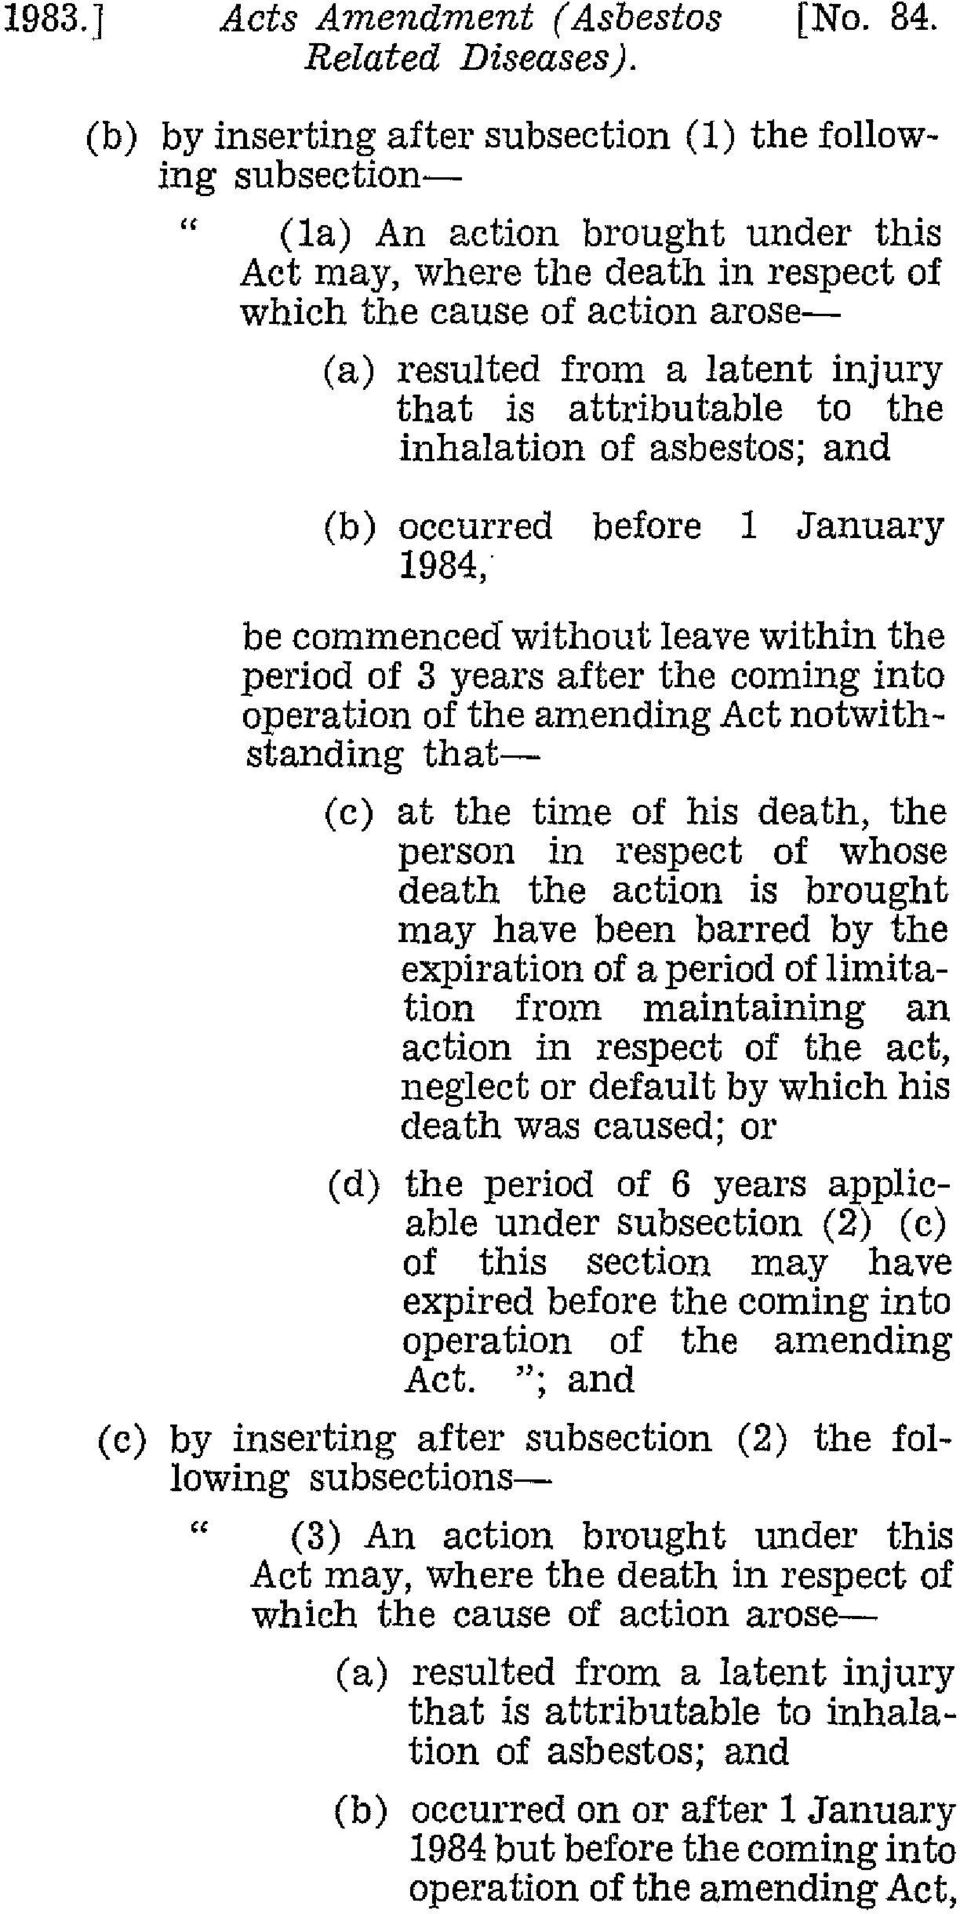 that is attributable to the inhalation of asbestos; and occurred before 1 January 1984, be commenced without leave within the period of 3 years after the coming into operation of the amending Act